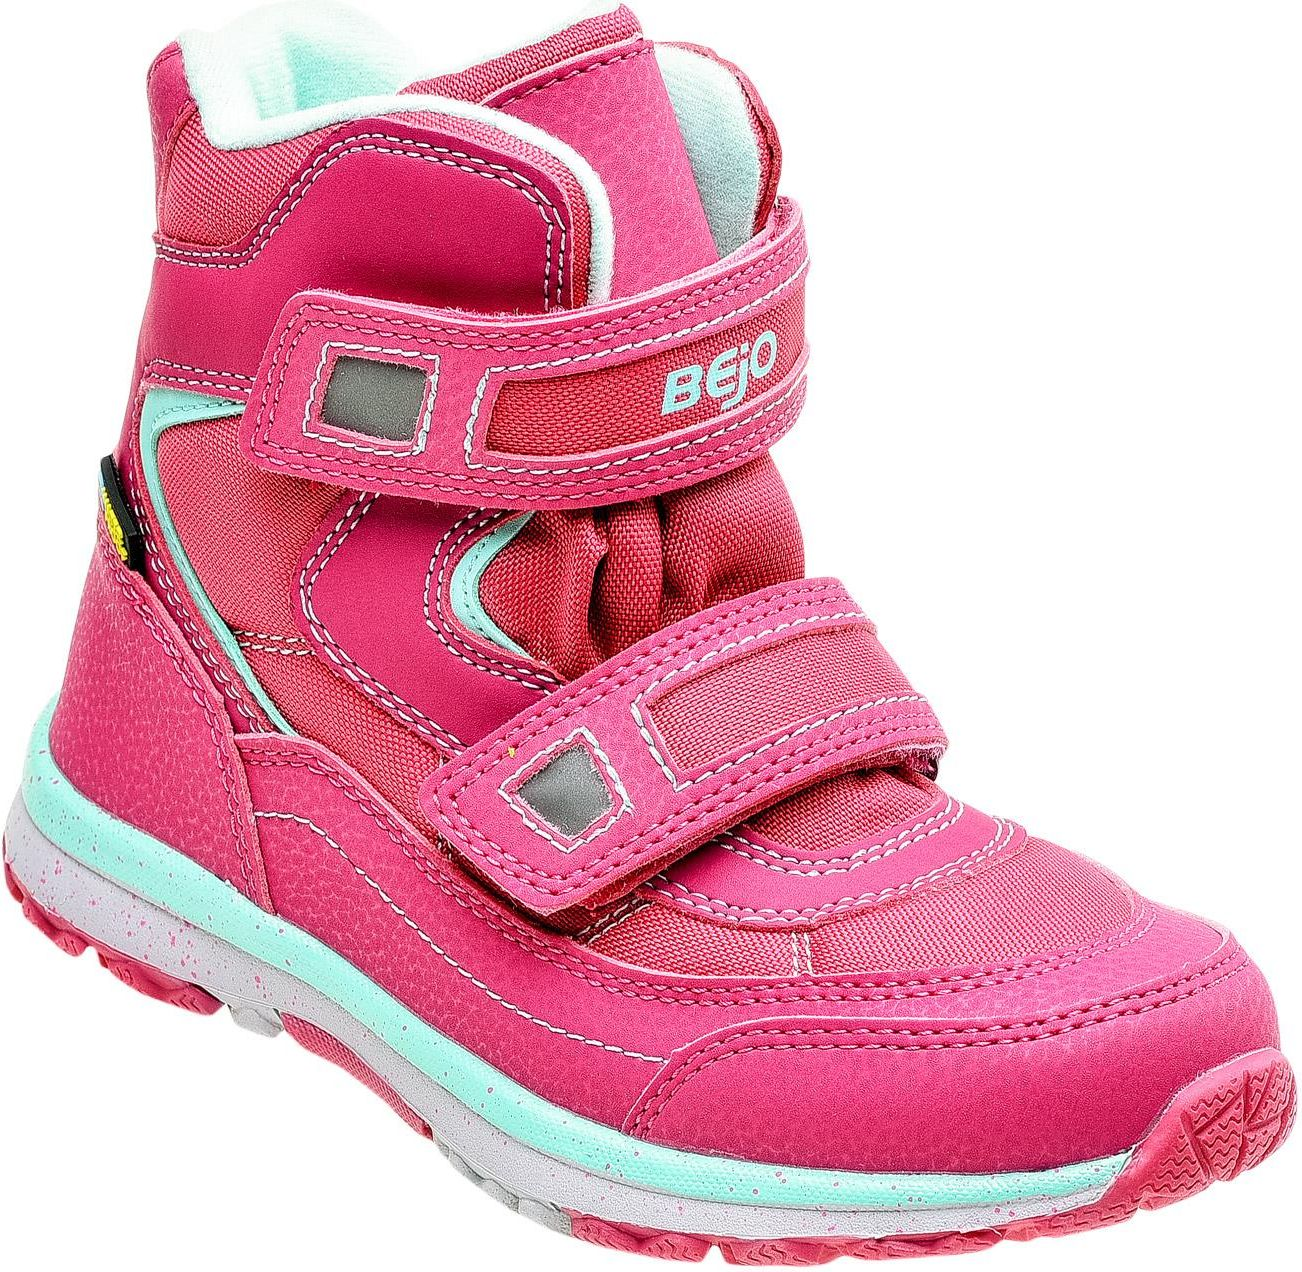 BEJO Buty dzieciece Piner Jr Fuchsia/dark Fuchsia/mint Green r. 33 5264543